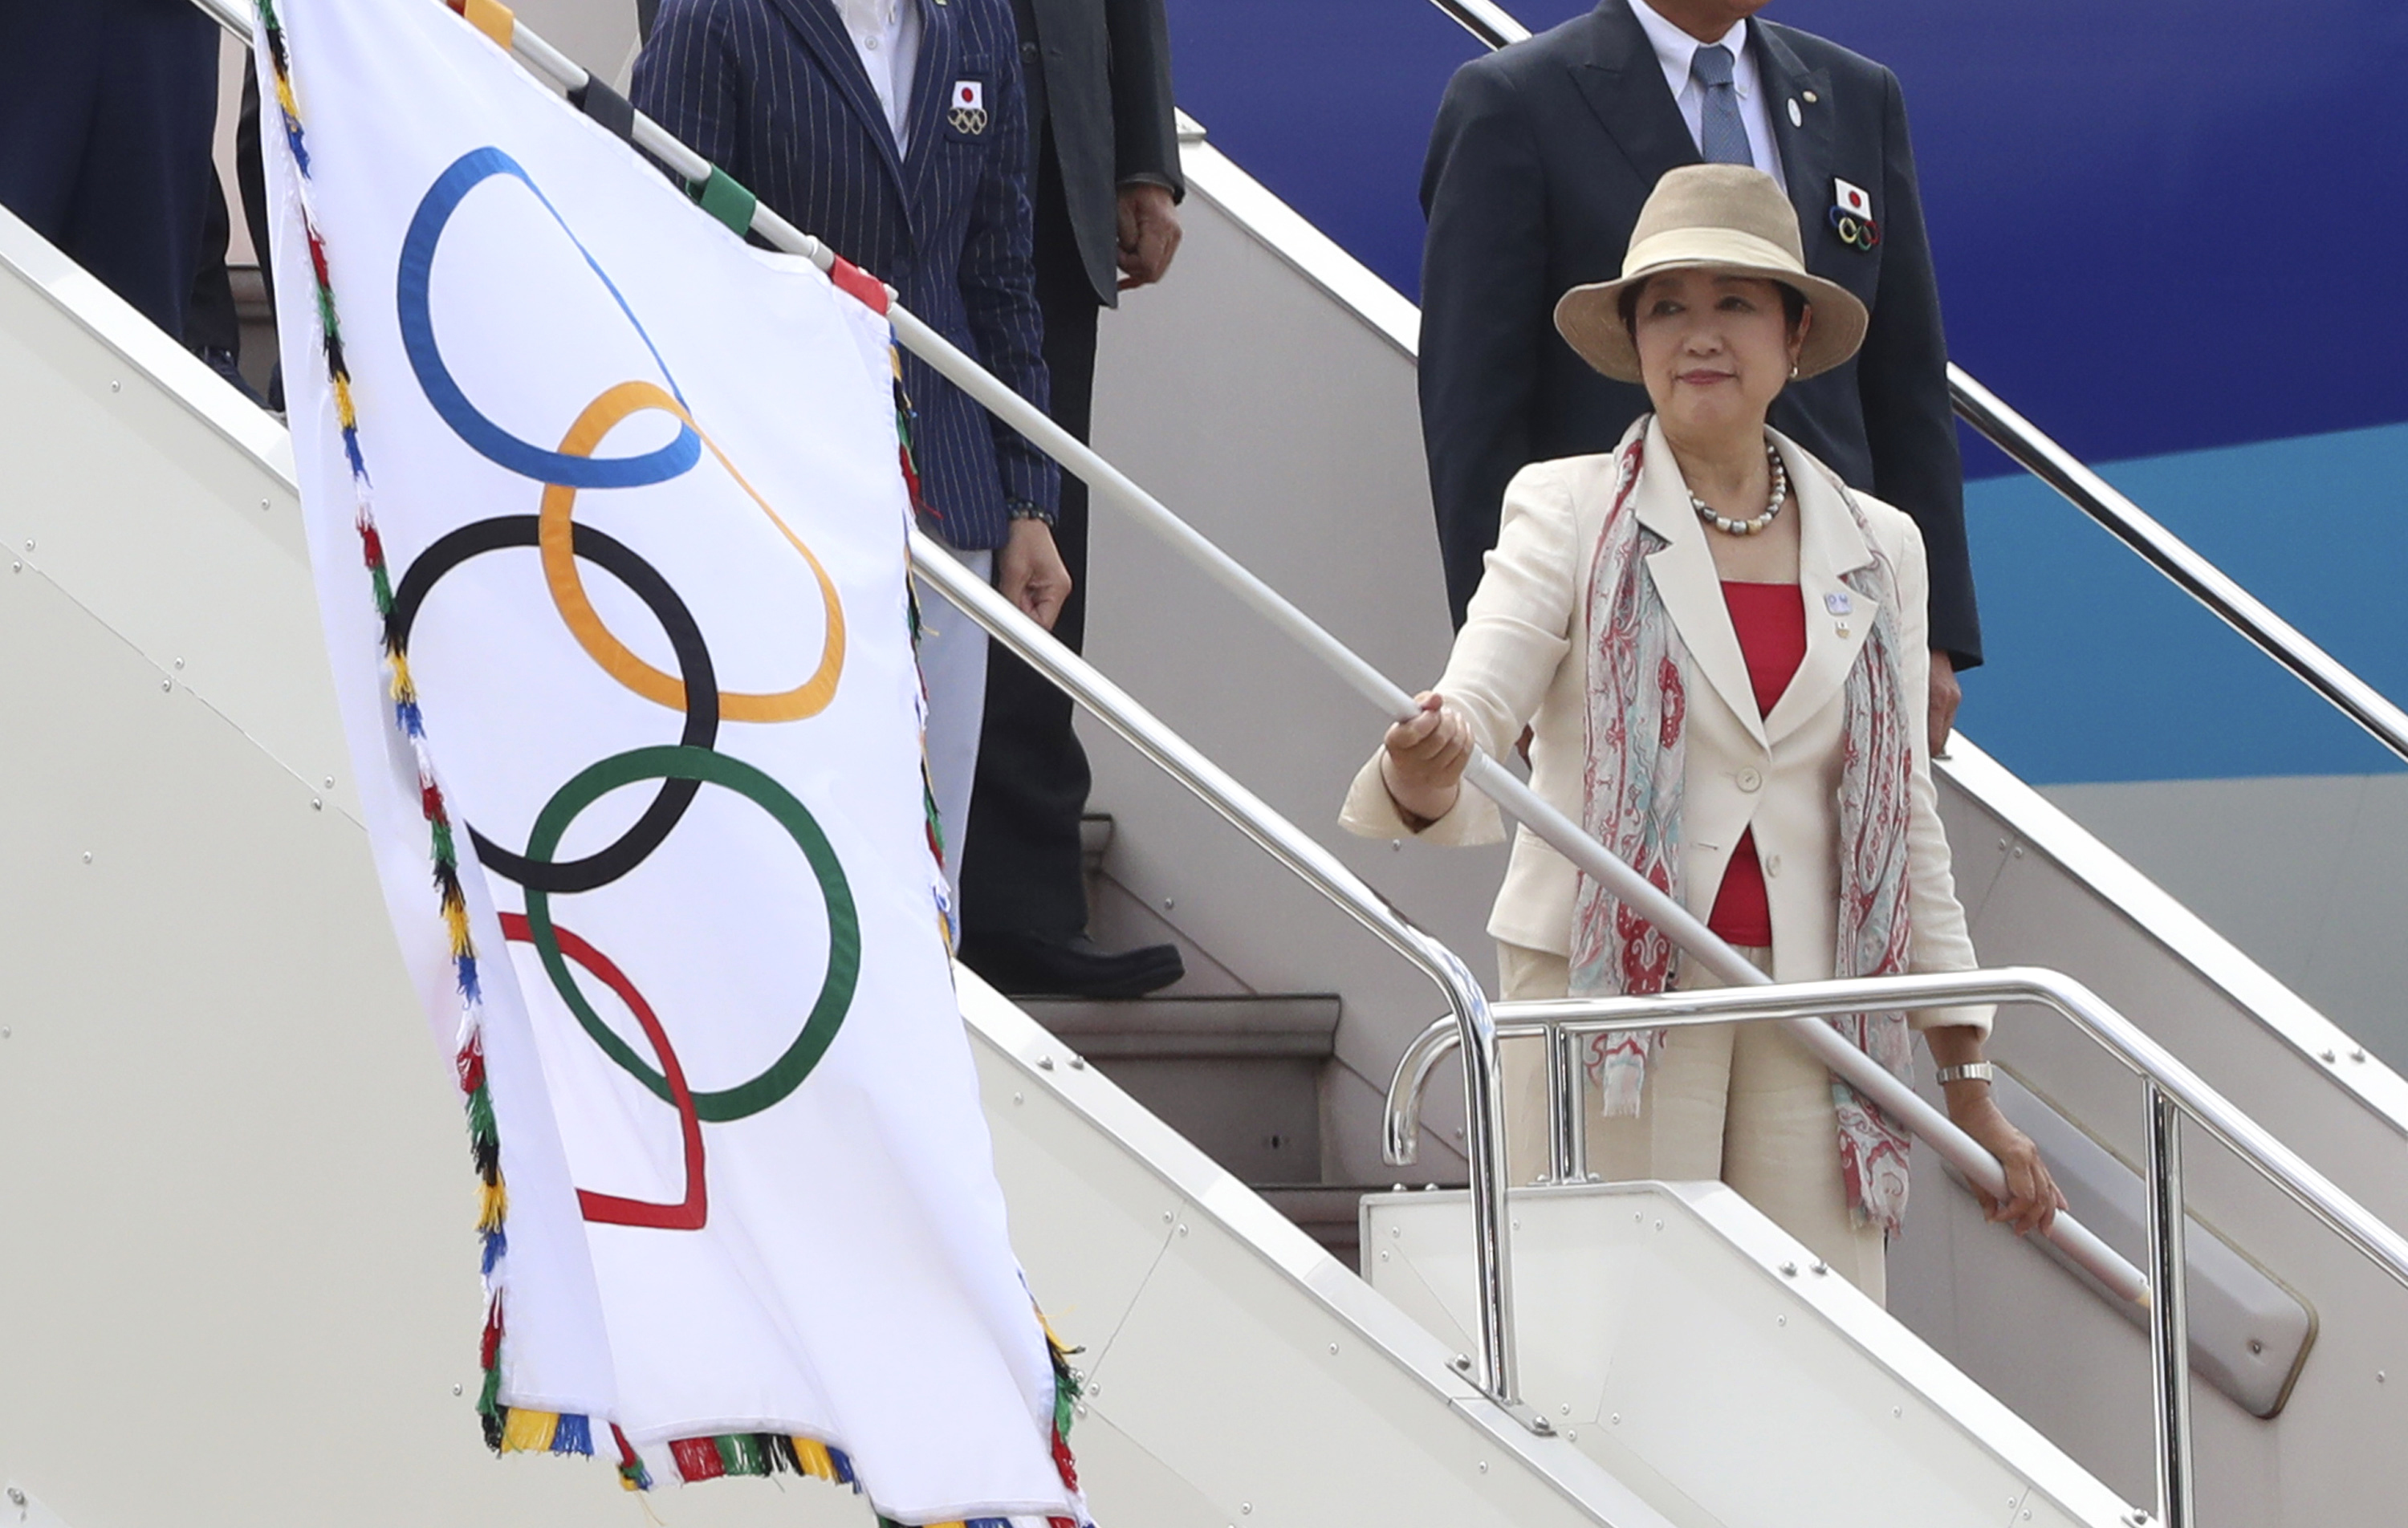 FILE - In this Aug. 24, 2016 file photo, Tokyo Gov. Yuriko Koike waves the Olympic flag upon arrival of the flag at Haneda international airport in Tokyo. Koike expects the 2020 Paralympics to make Japan's capital more accessible for people with disabilit